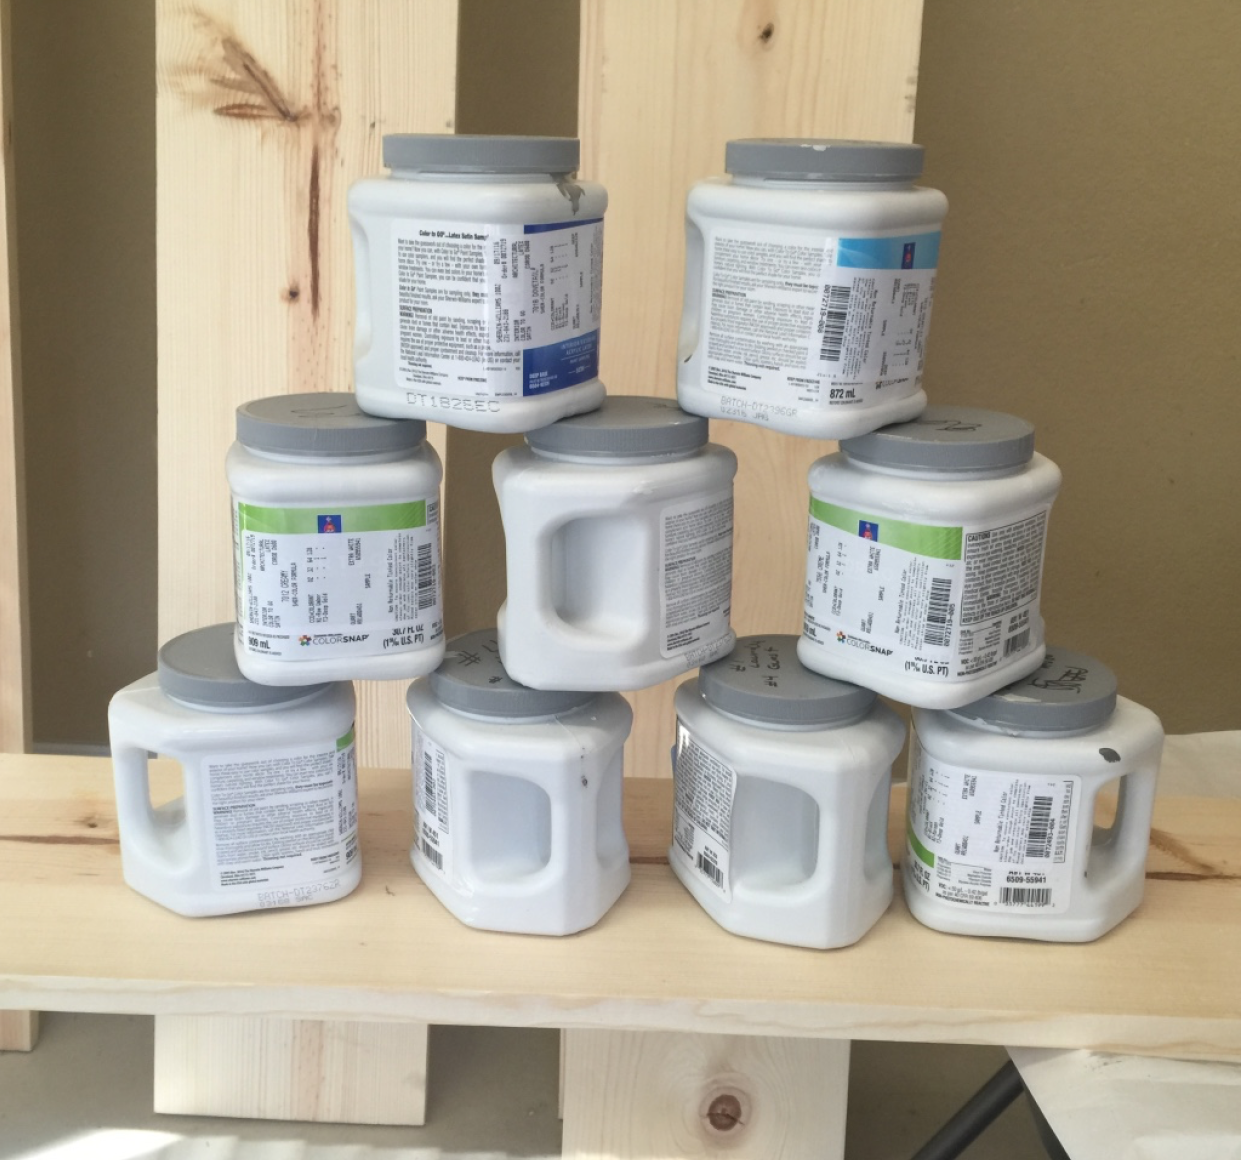 We used all the old paint samples left over from choosing wall colors (which as a bonus ties the colors throughout the house).